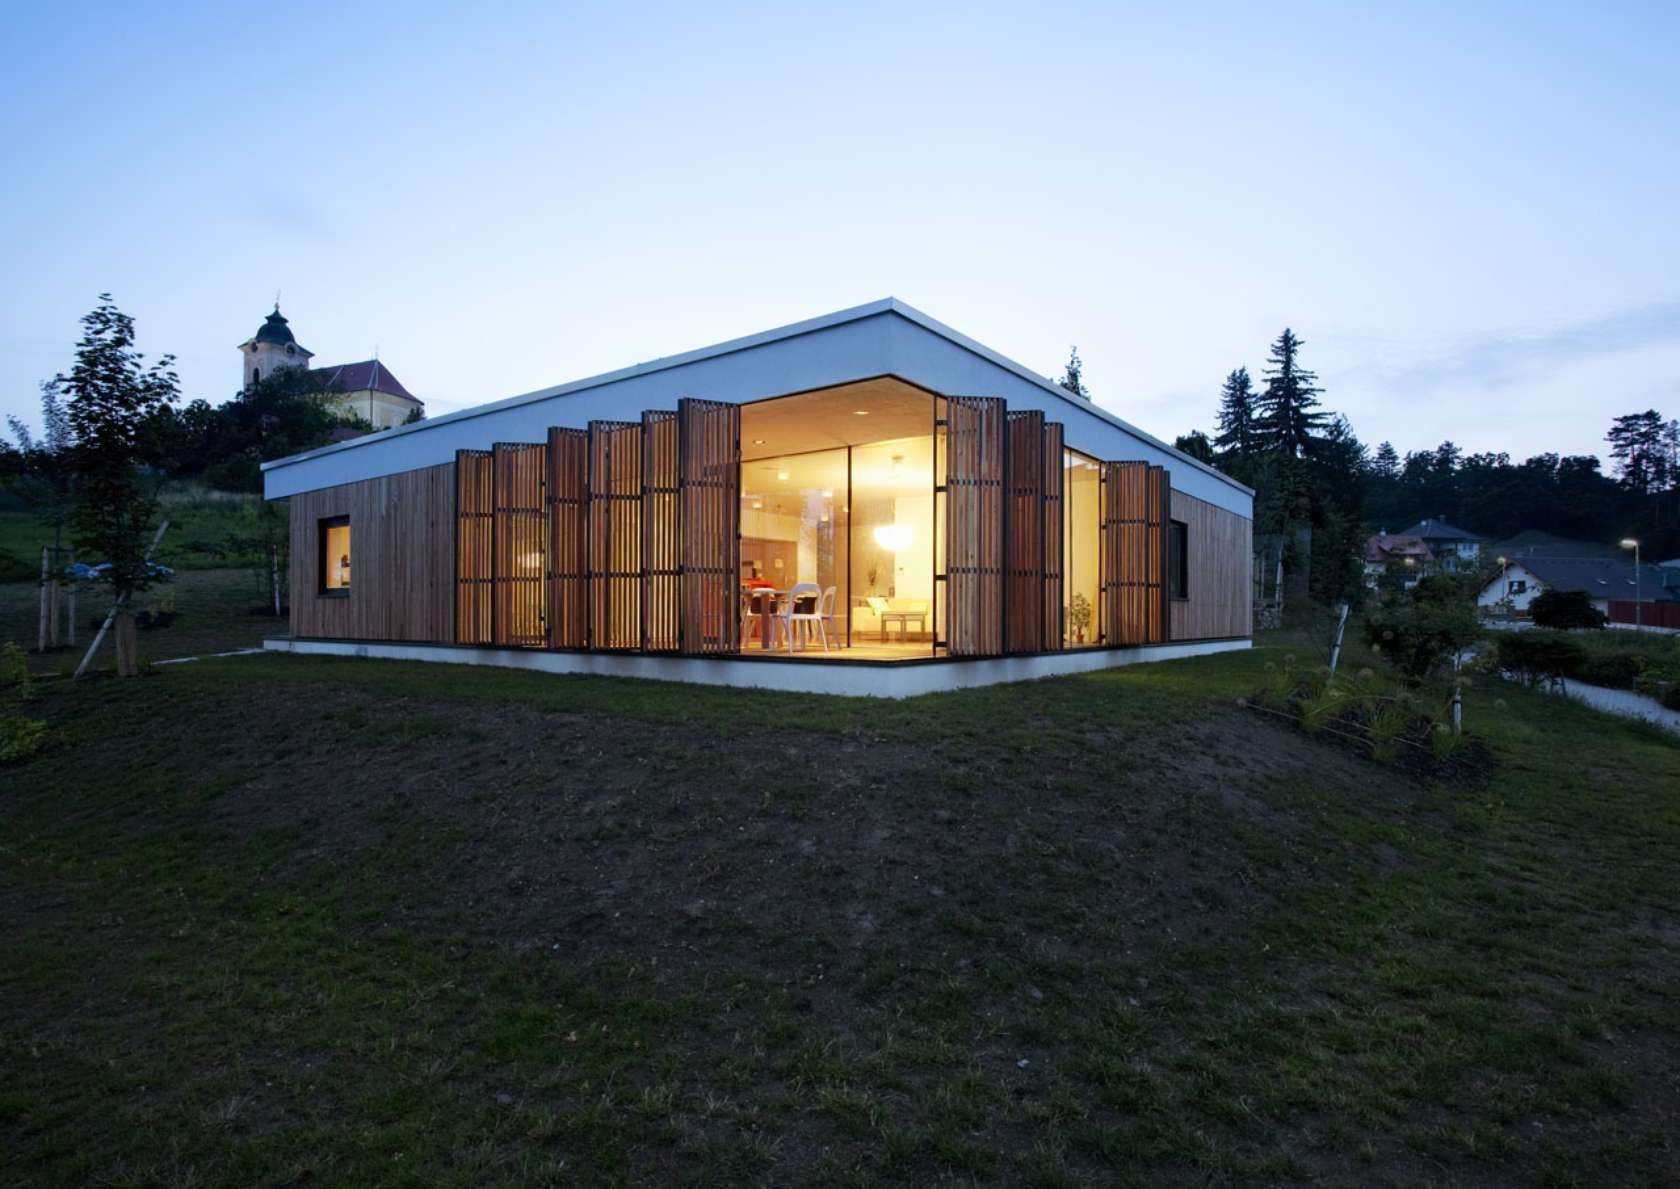 A Single Story House Built Over A Square Ground Plan, Without A Cellar And